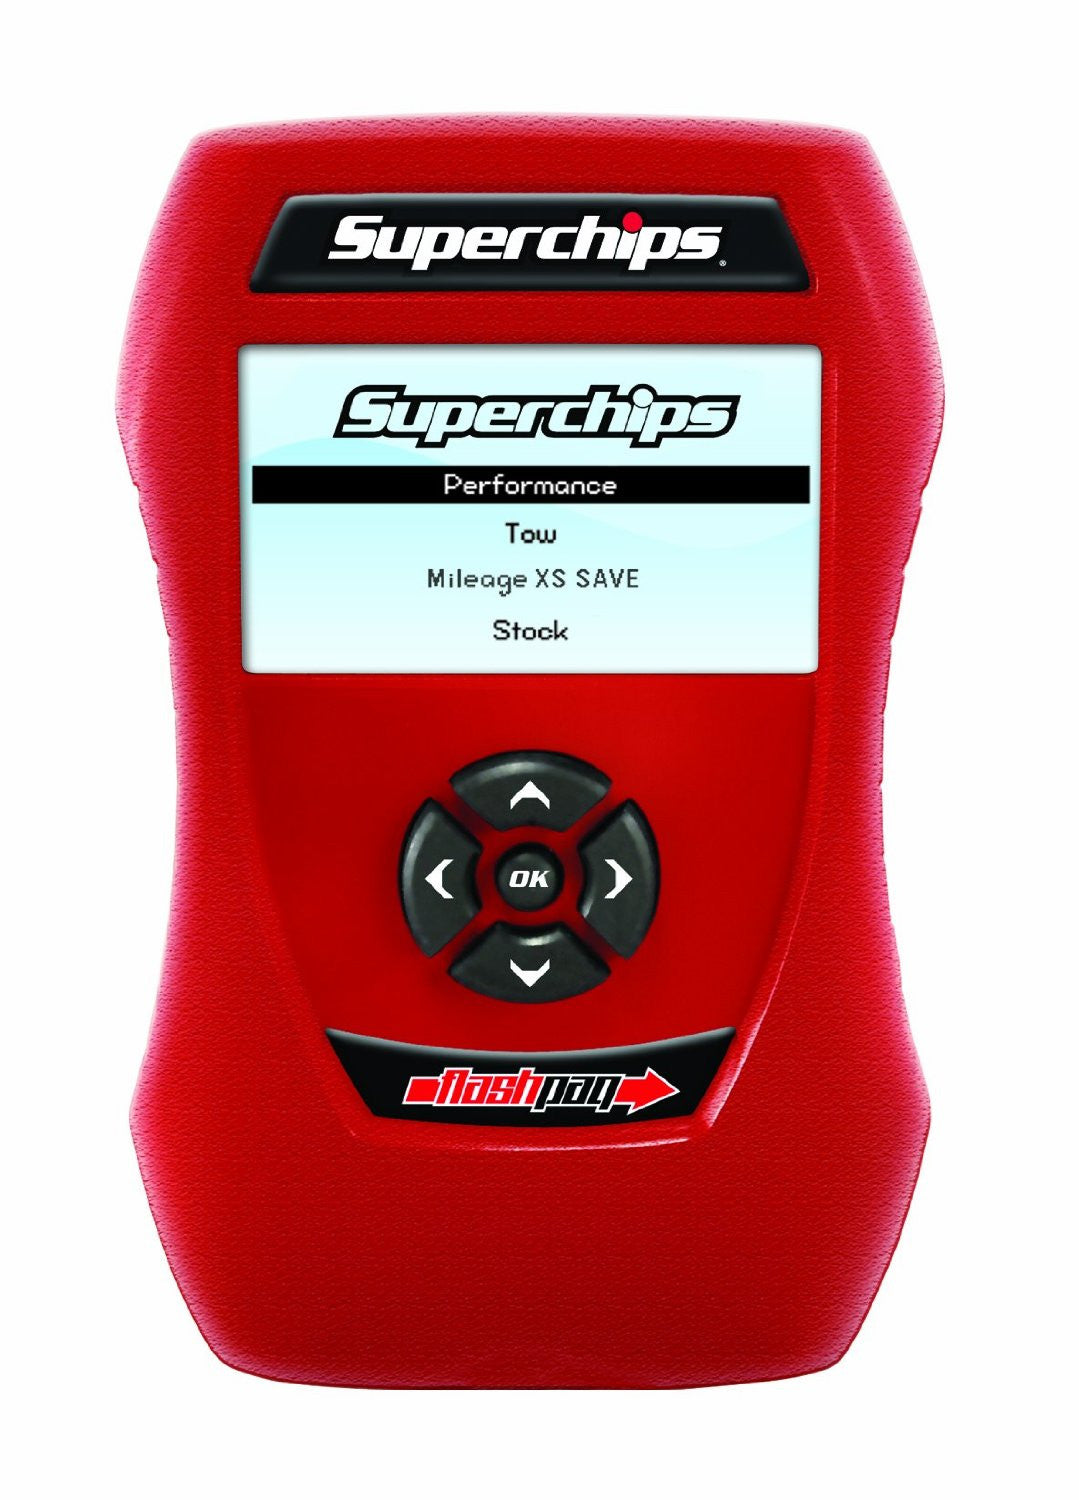 Superchips Flashpaq 1855 1845 performance tuner 1999-2010 Ford Trucks Powerstroke Diesel